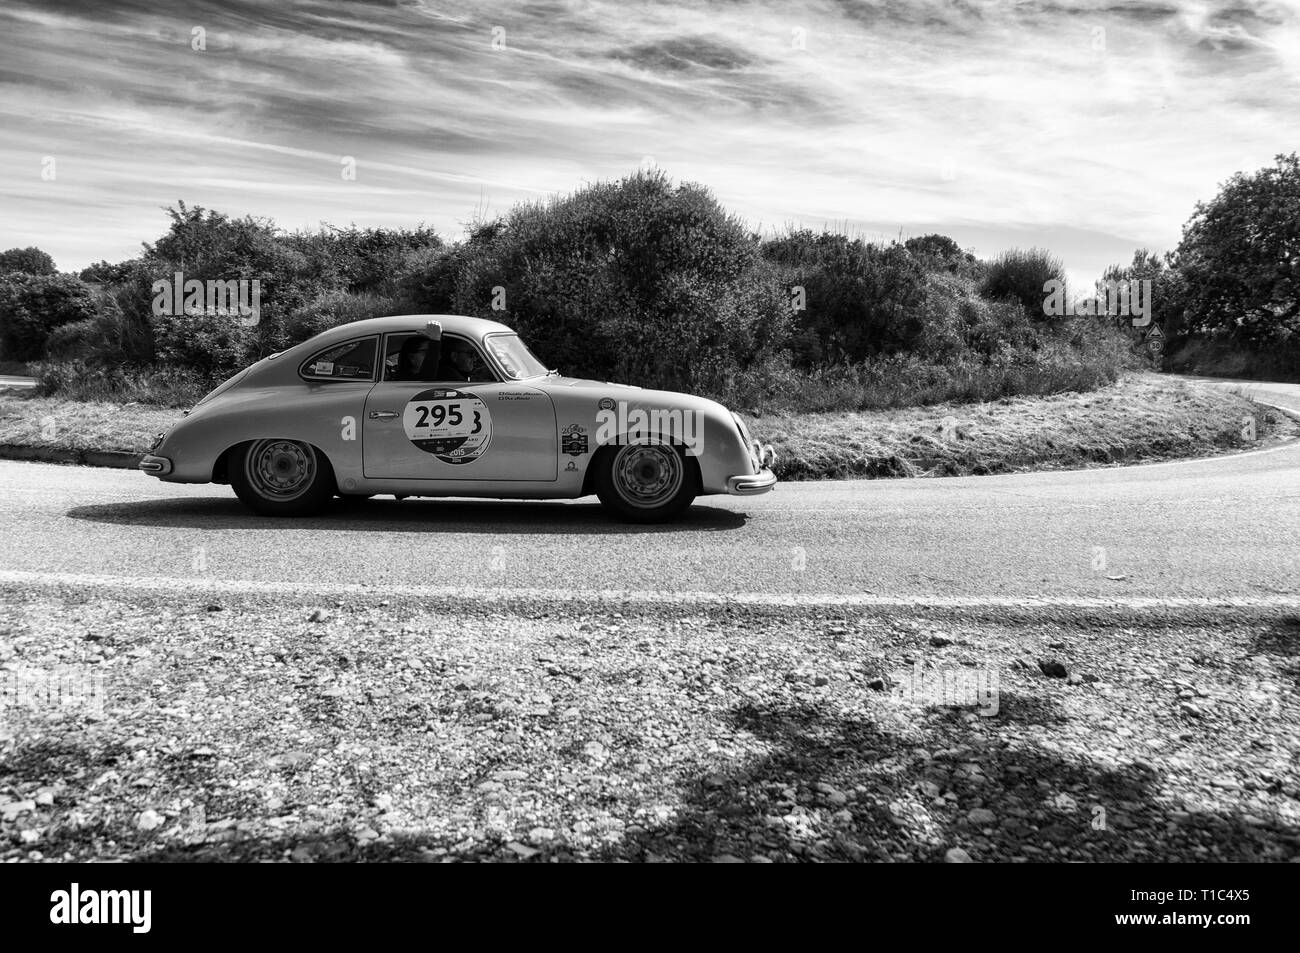 PORSCHE 356 1500 SUPER 1953 on an old racing car in rally Mille Miglia 2018 the famous italian historical race (1927-1957) - Stock Image